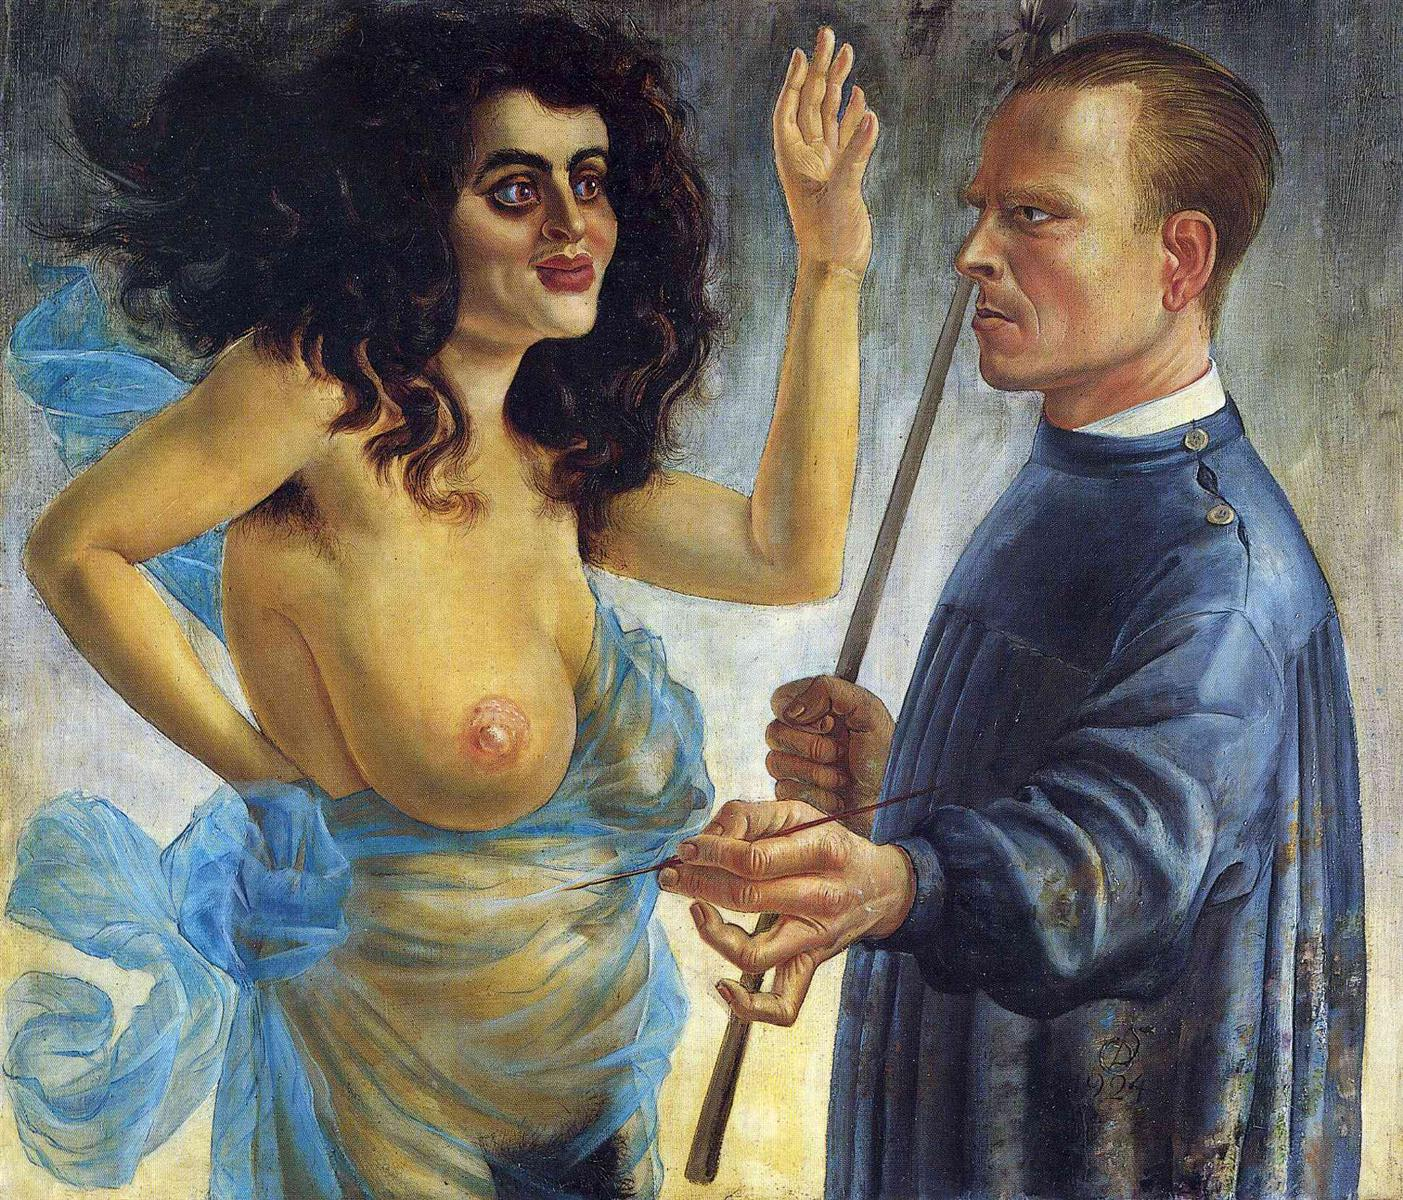 http://uploads0.wikipaintings.org/images/otto-dix/self-portrait-with-muse.jpg!HD.jpg